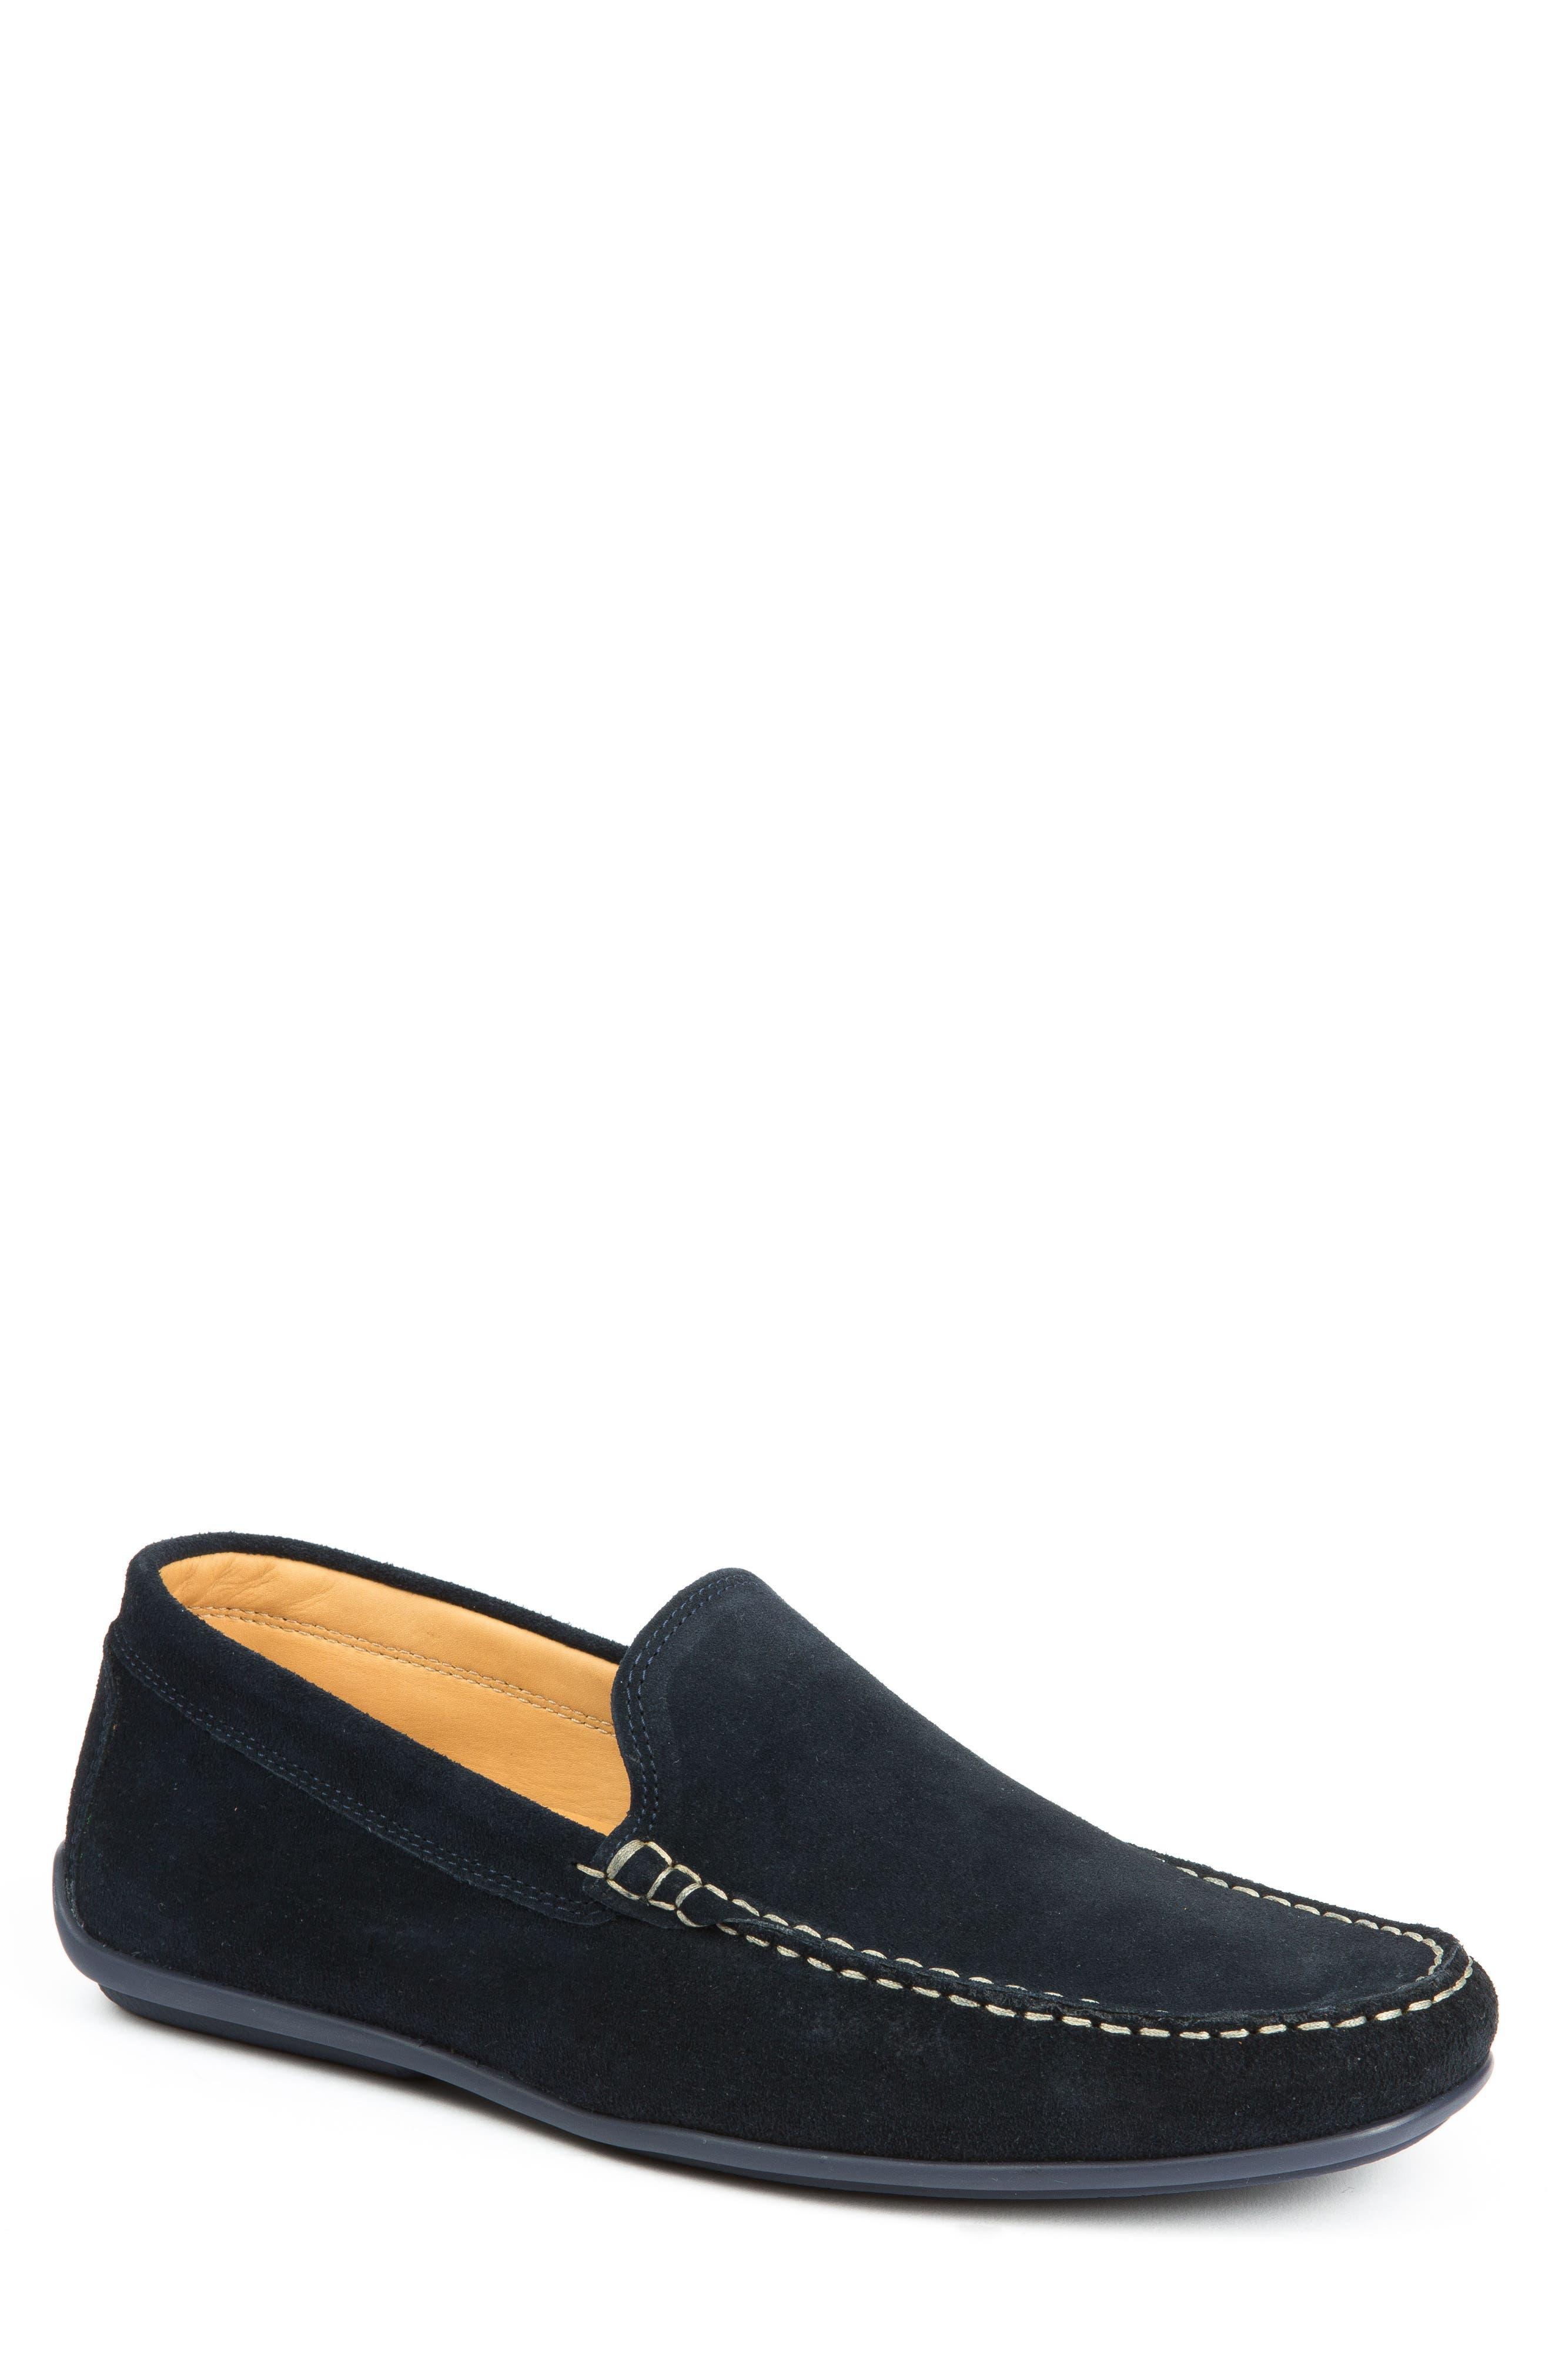 'Meridians' Loafer,                             Alternate thumbnail 2, color,                             410